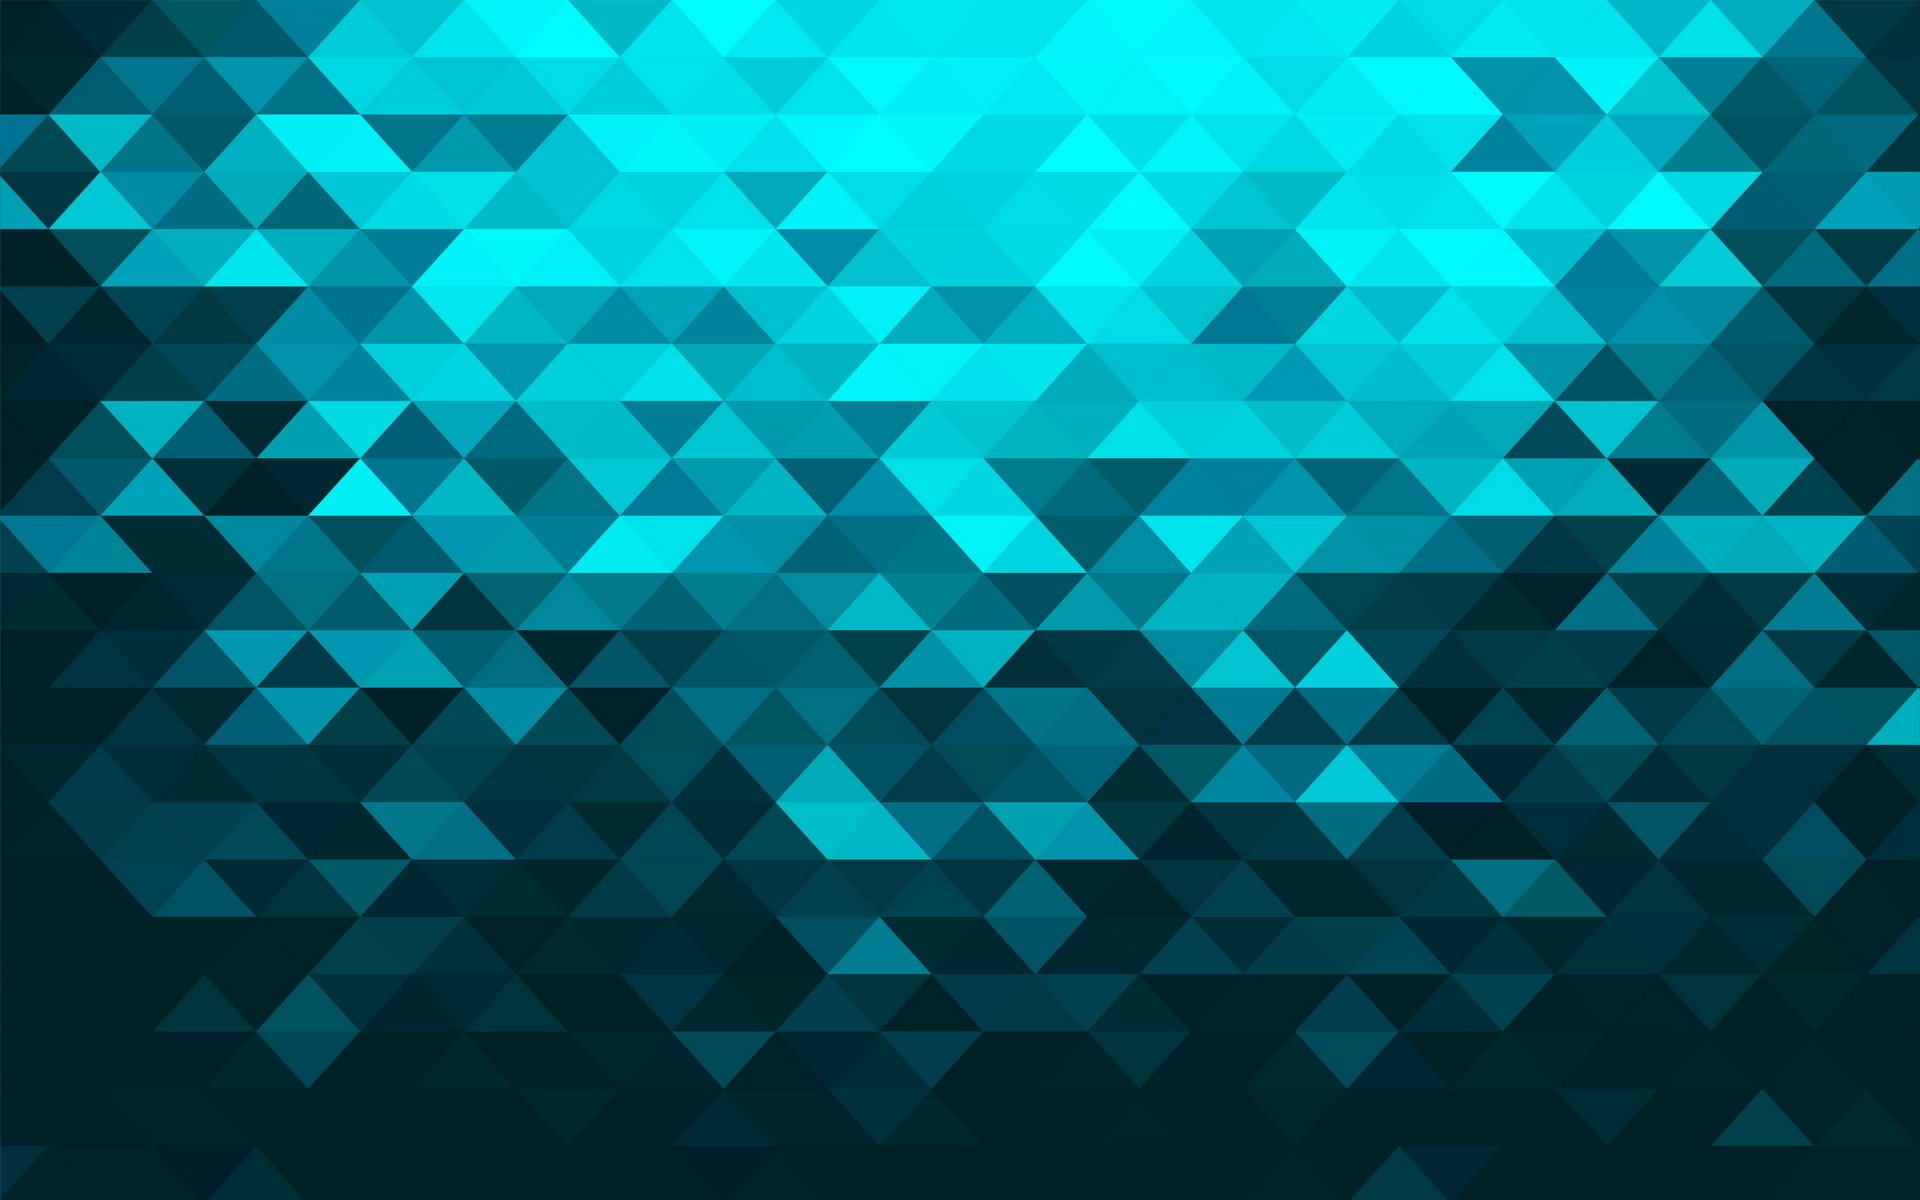 Abstract - Turquoise  Shapes Geometry Wallpaper